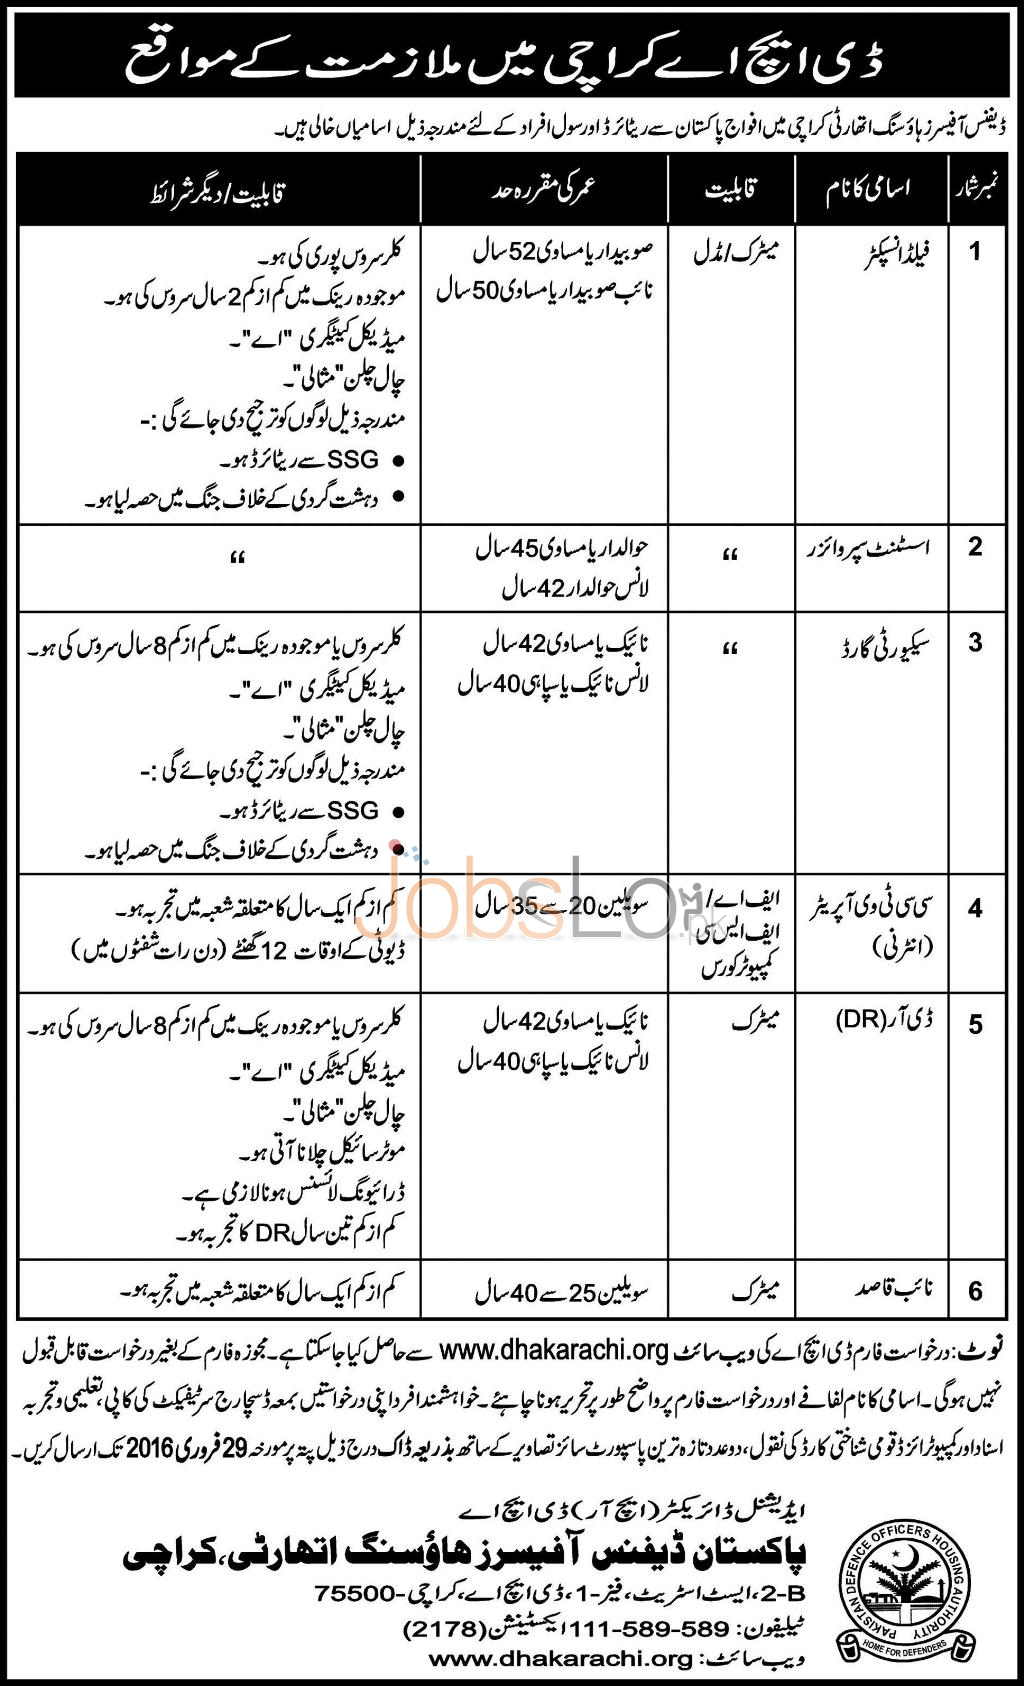 Situations Vacant in Defence Housing Authority DHA 21 February 2016 Karachi Application Form www.dhakarachi.org